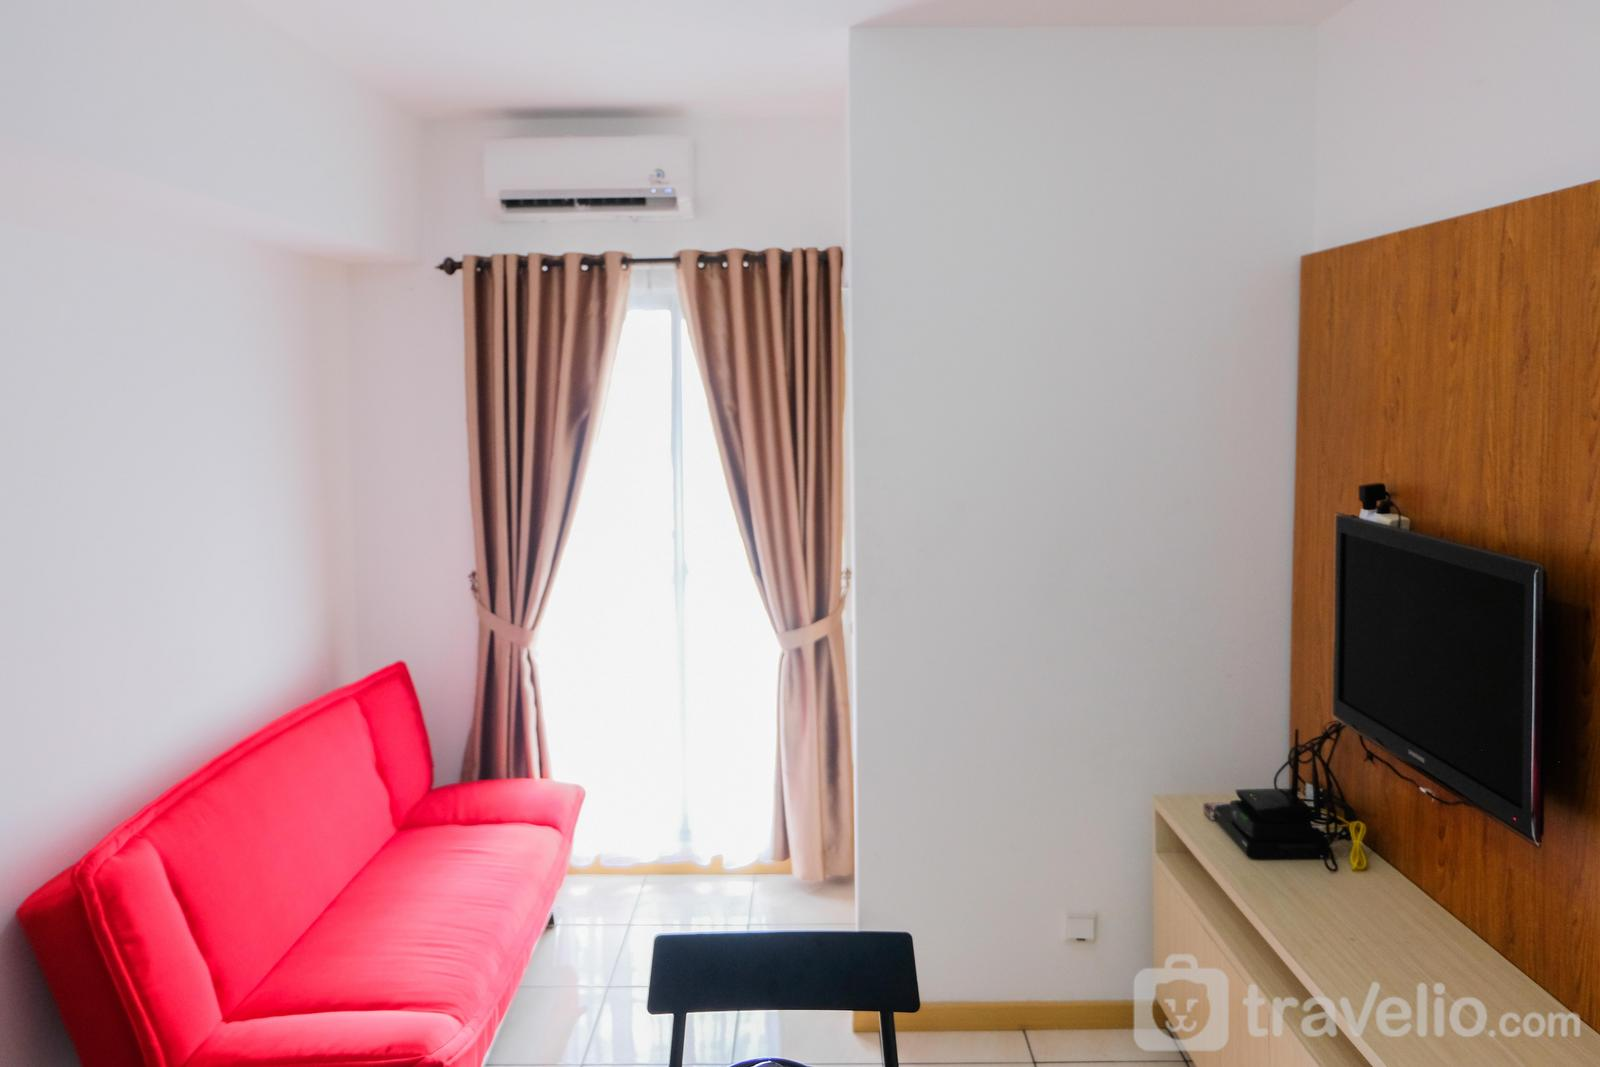 M Town Residence - Modern and Cozy 2BR Apartment at M-Town Residence By Travelio